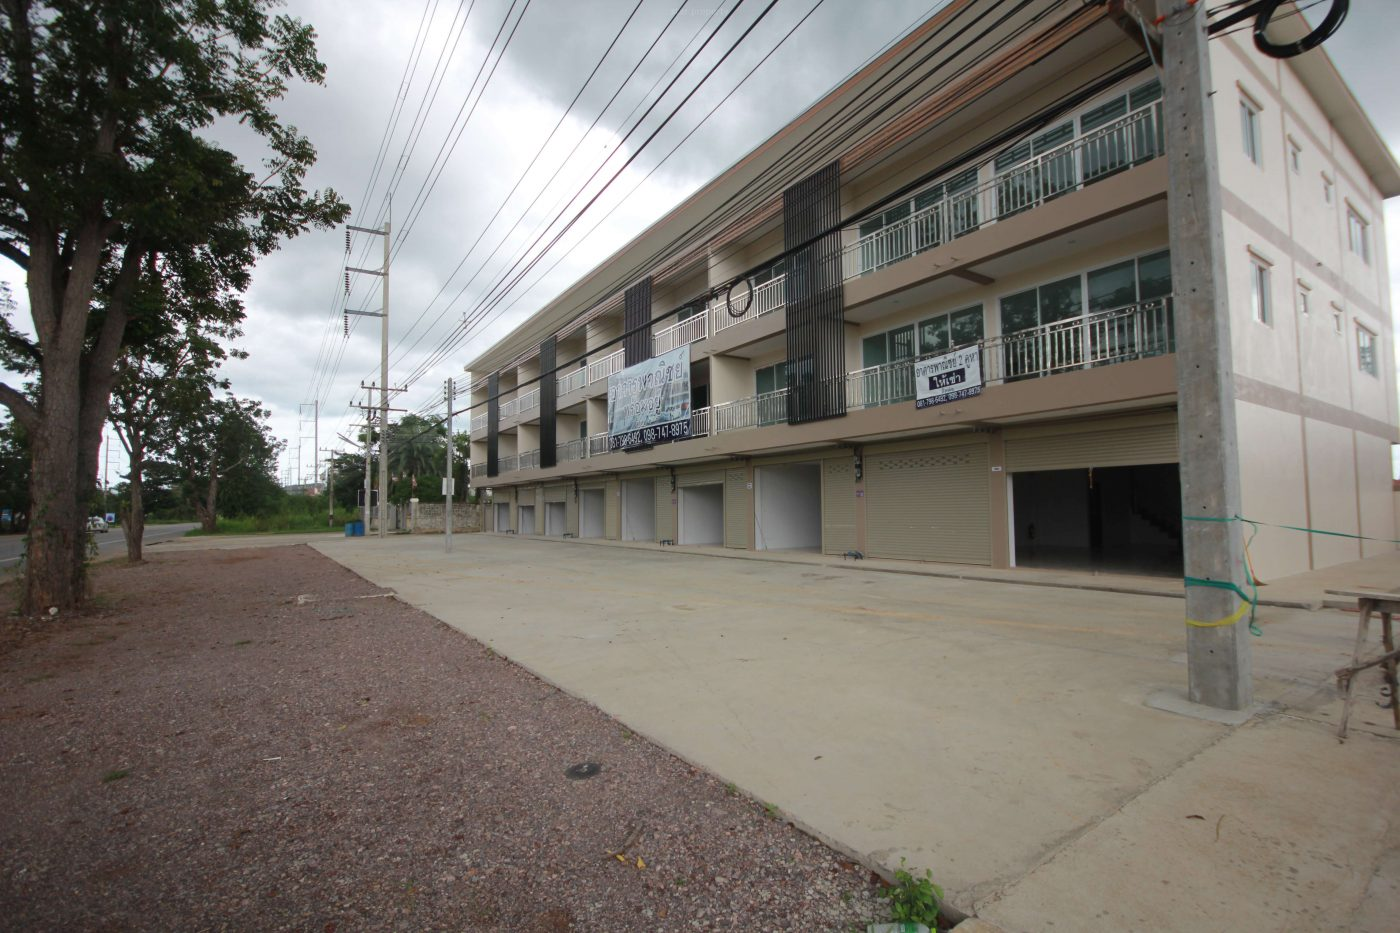 3 Story Town House For Sale Soi 70 at Hua Hin District, Prachuap Khiri Khan, Thailand